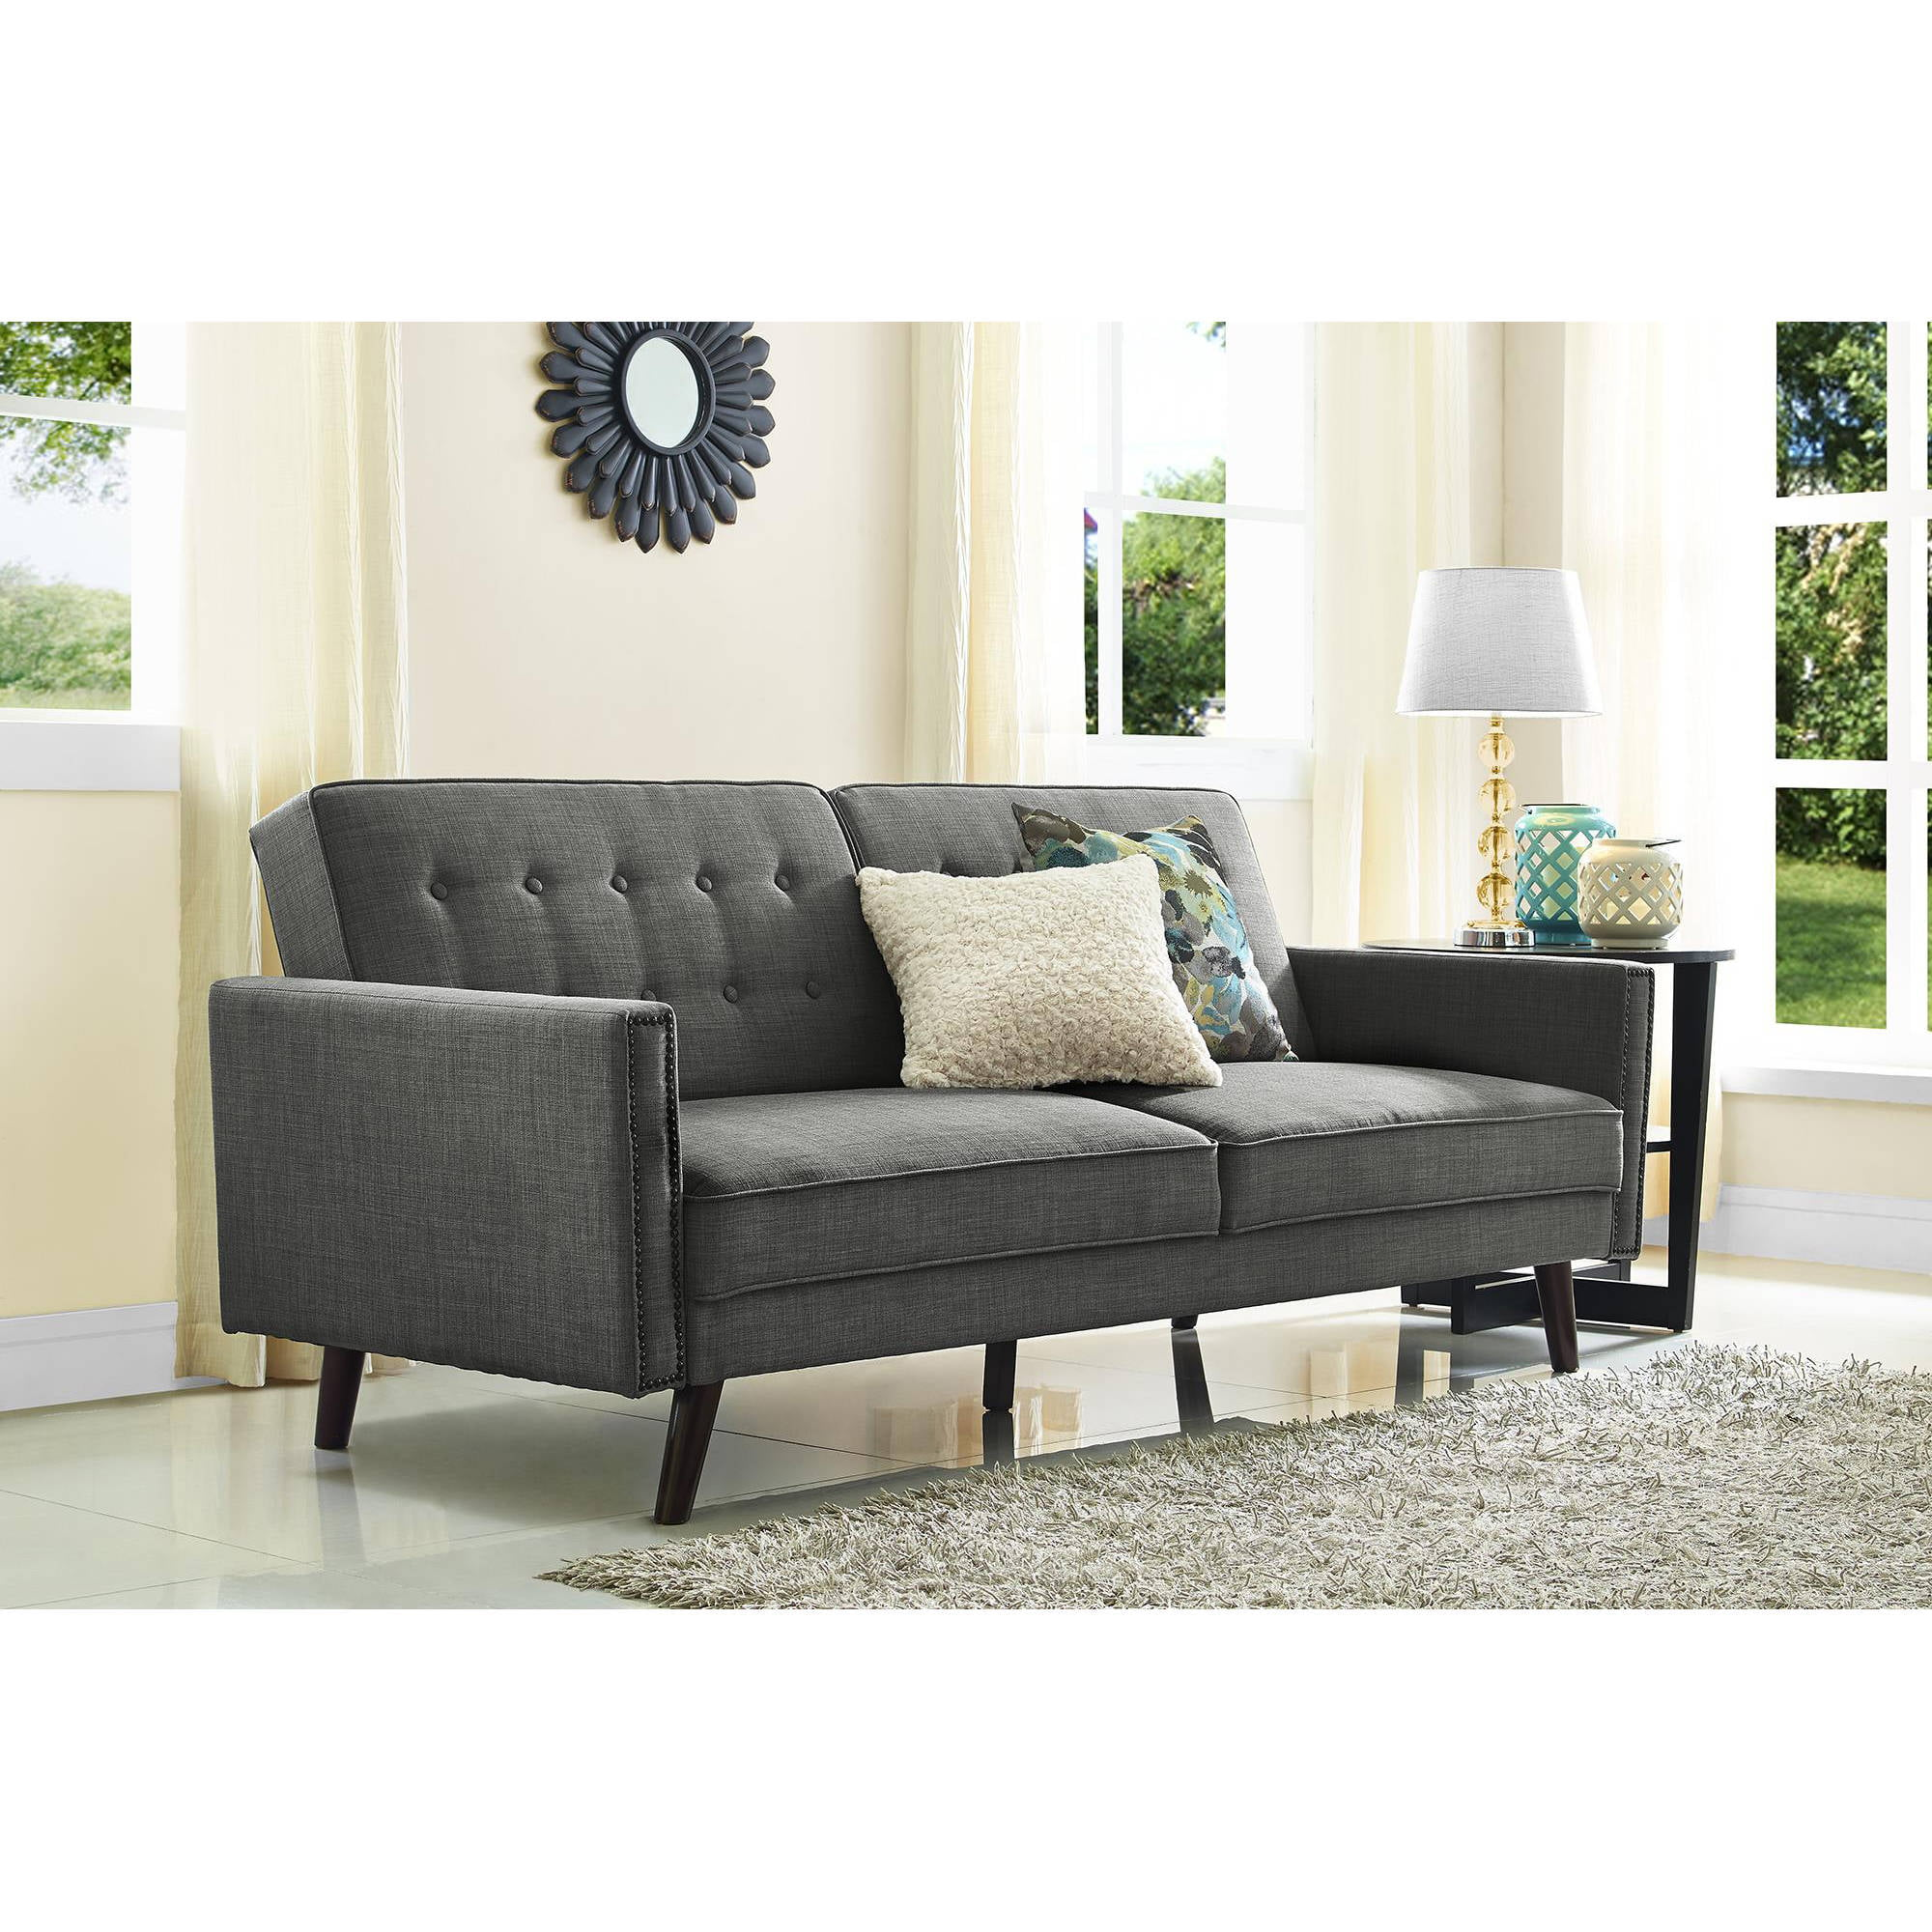 good looking better homes gardens.  Better Homes and Gardens Rowan Linen Futon Grey Walmart com